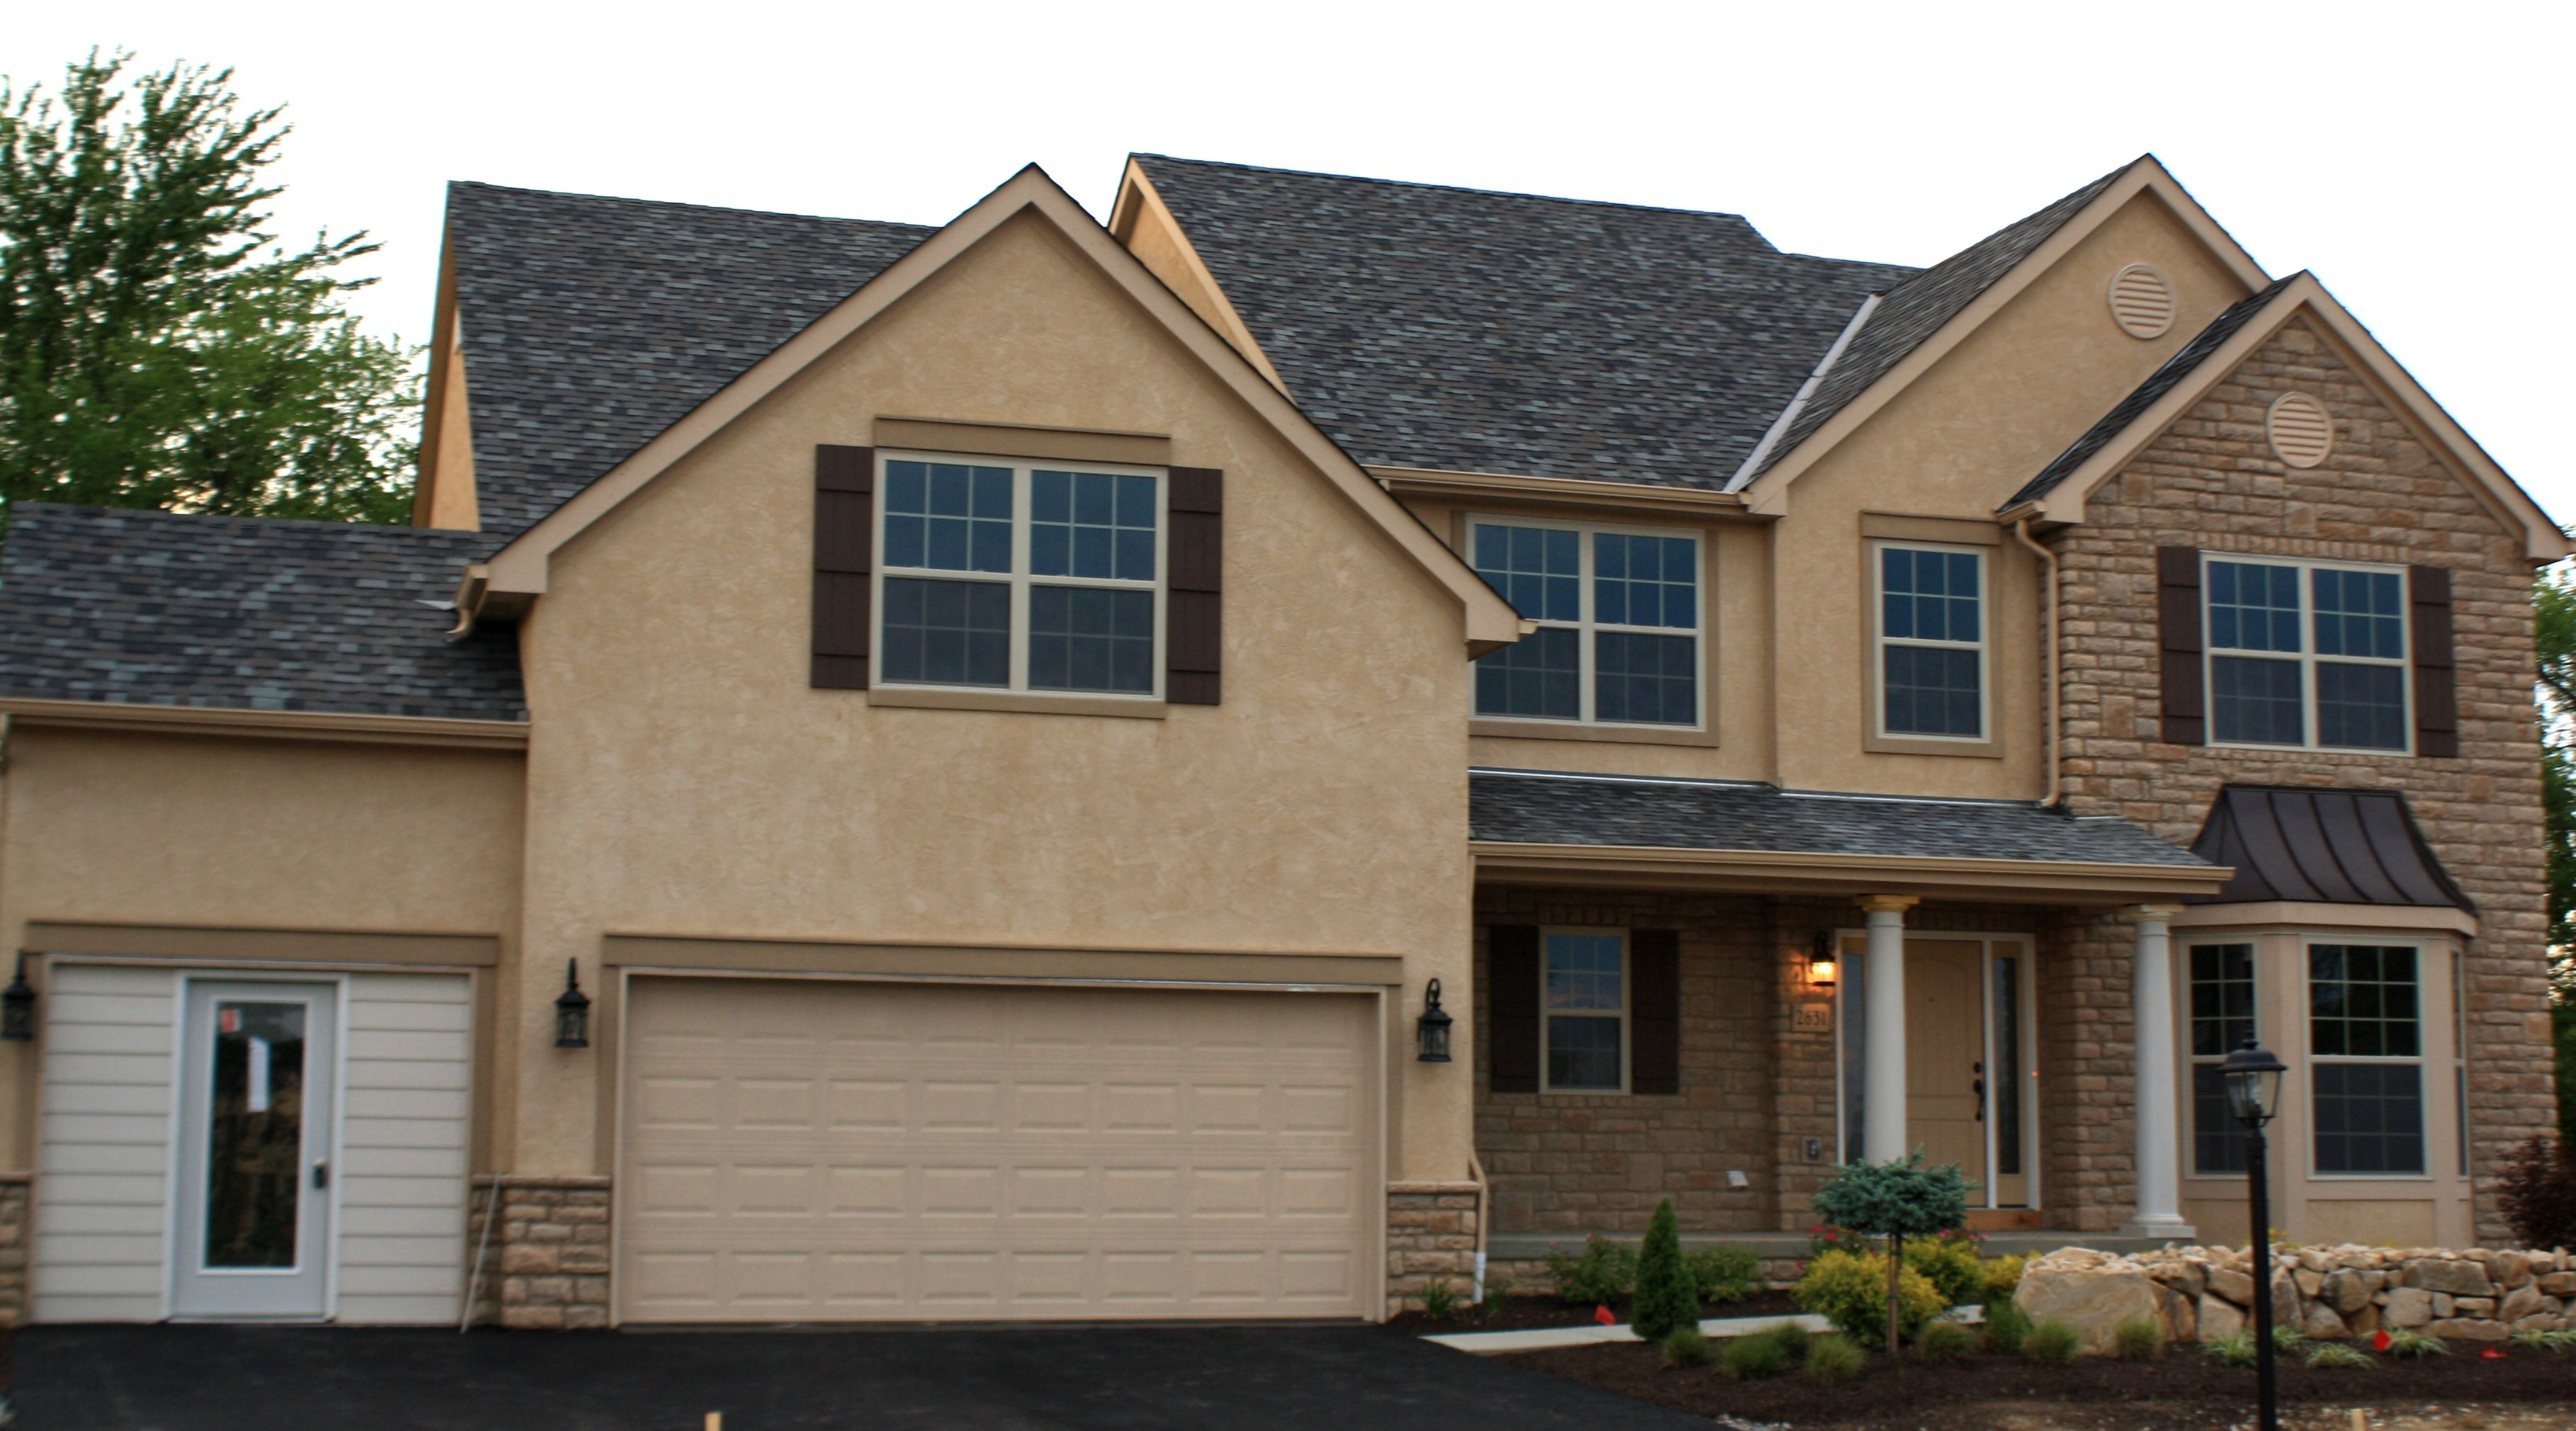 The hearth room with a stone fireplace is a must see in this Trinity Custom Home BIA home